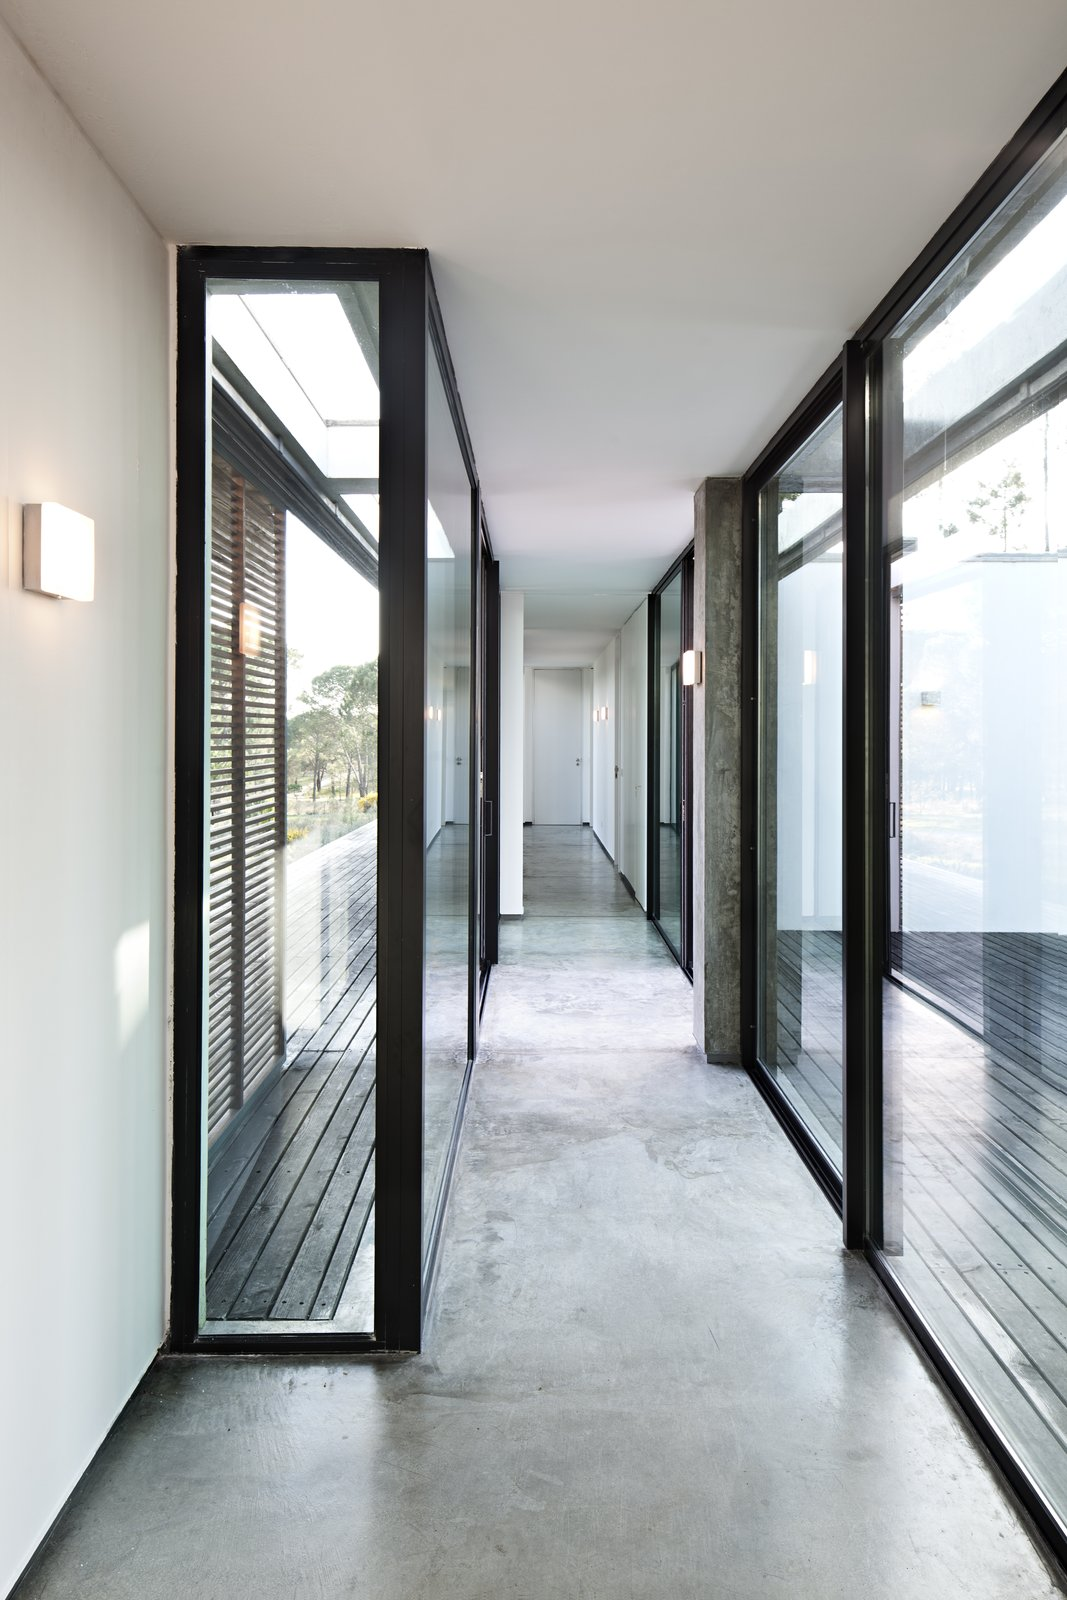 Hallway and Concrete Floor  Photo 5 of 15 in Escape to a Light-Filled, Beach-Meets-Forest Retreat in Portugal